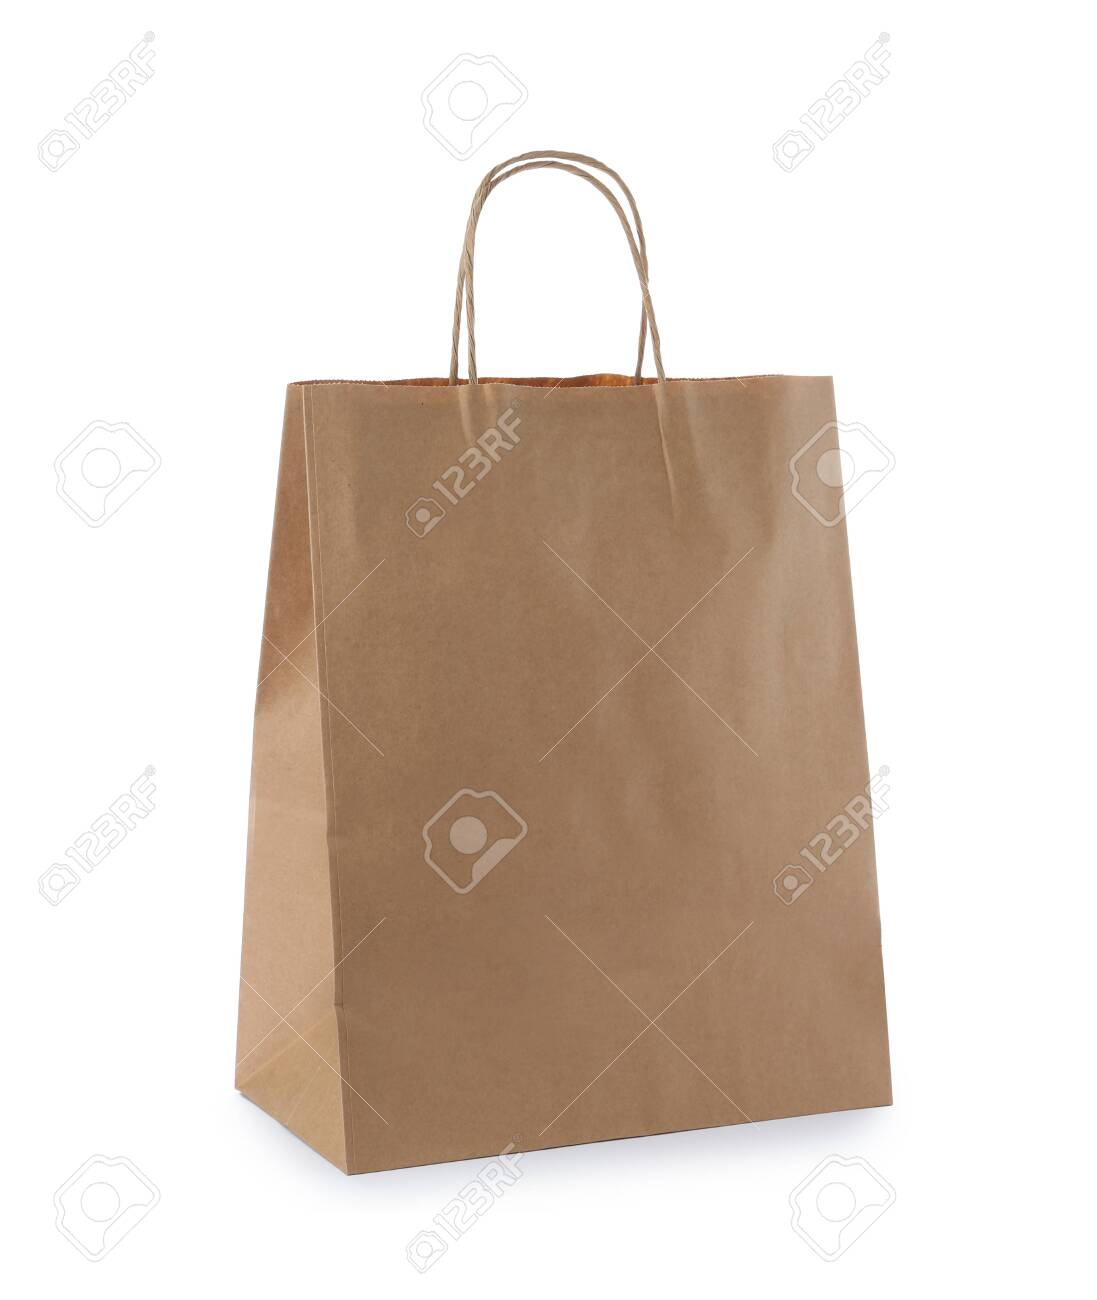 Empty craft paper bag isolated on white. Mockup for design - 130795951